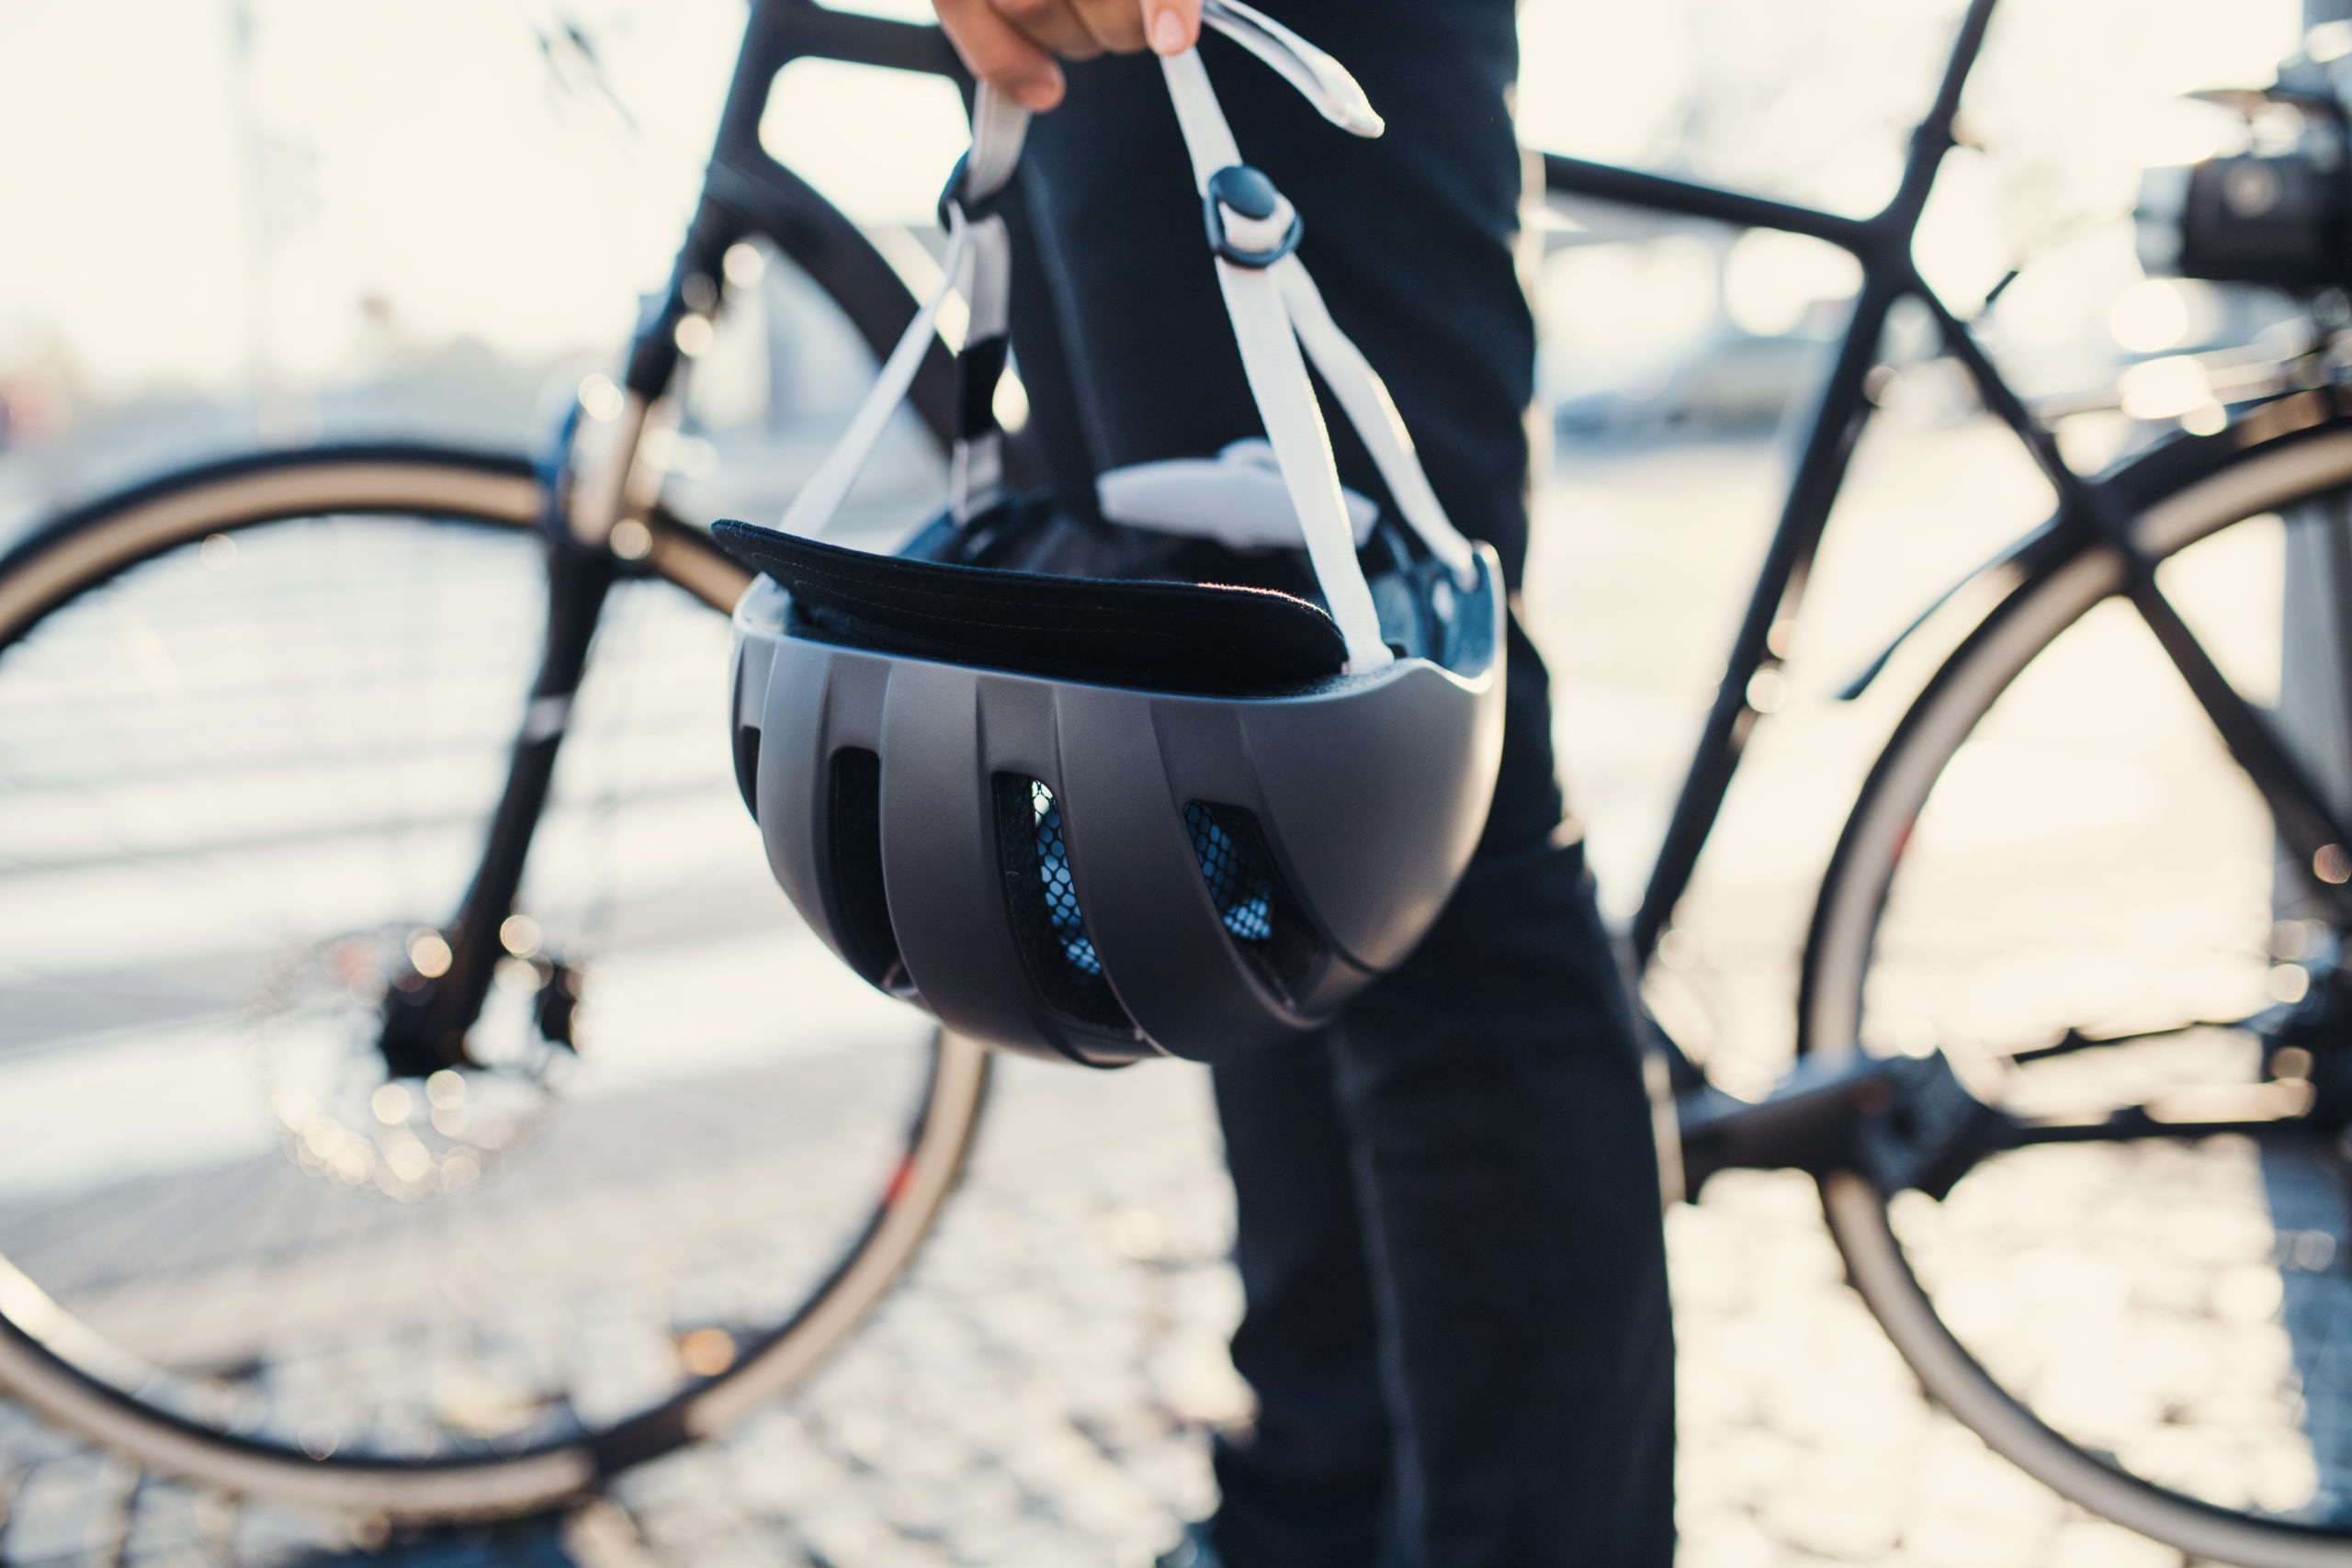 https://elements.envato.com/midsection-of-commuter-with-electric-bicycle-and-h-36U9C27